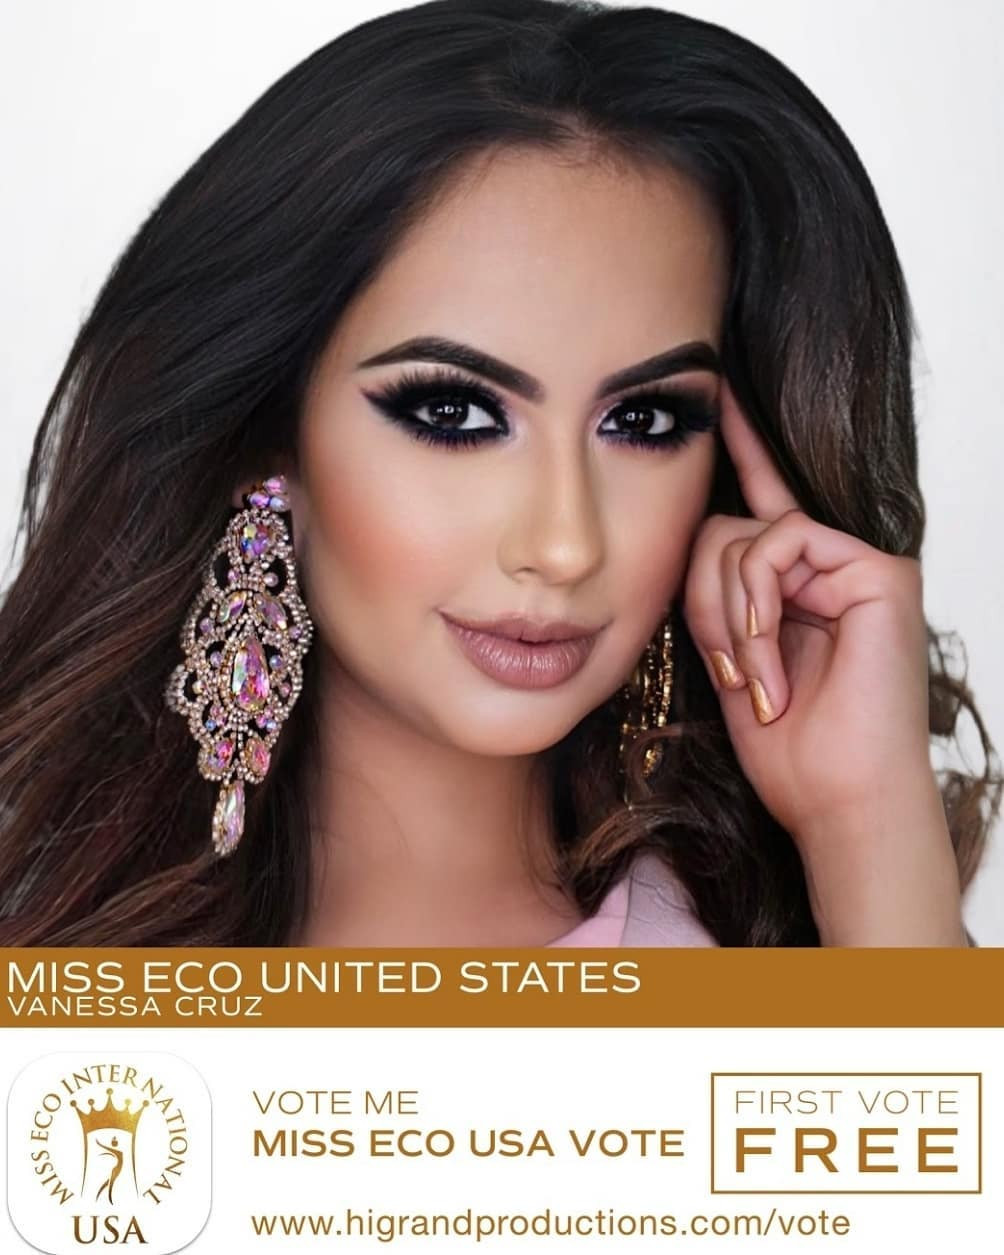 candidatas a miss eco usa 2021. final: 18 june. CJlnt4